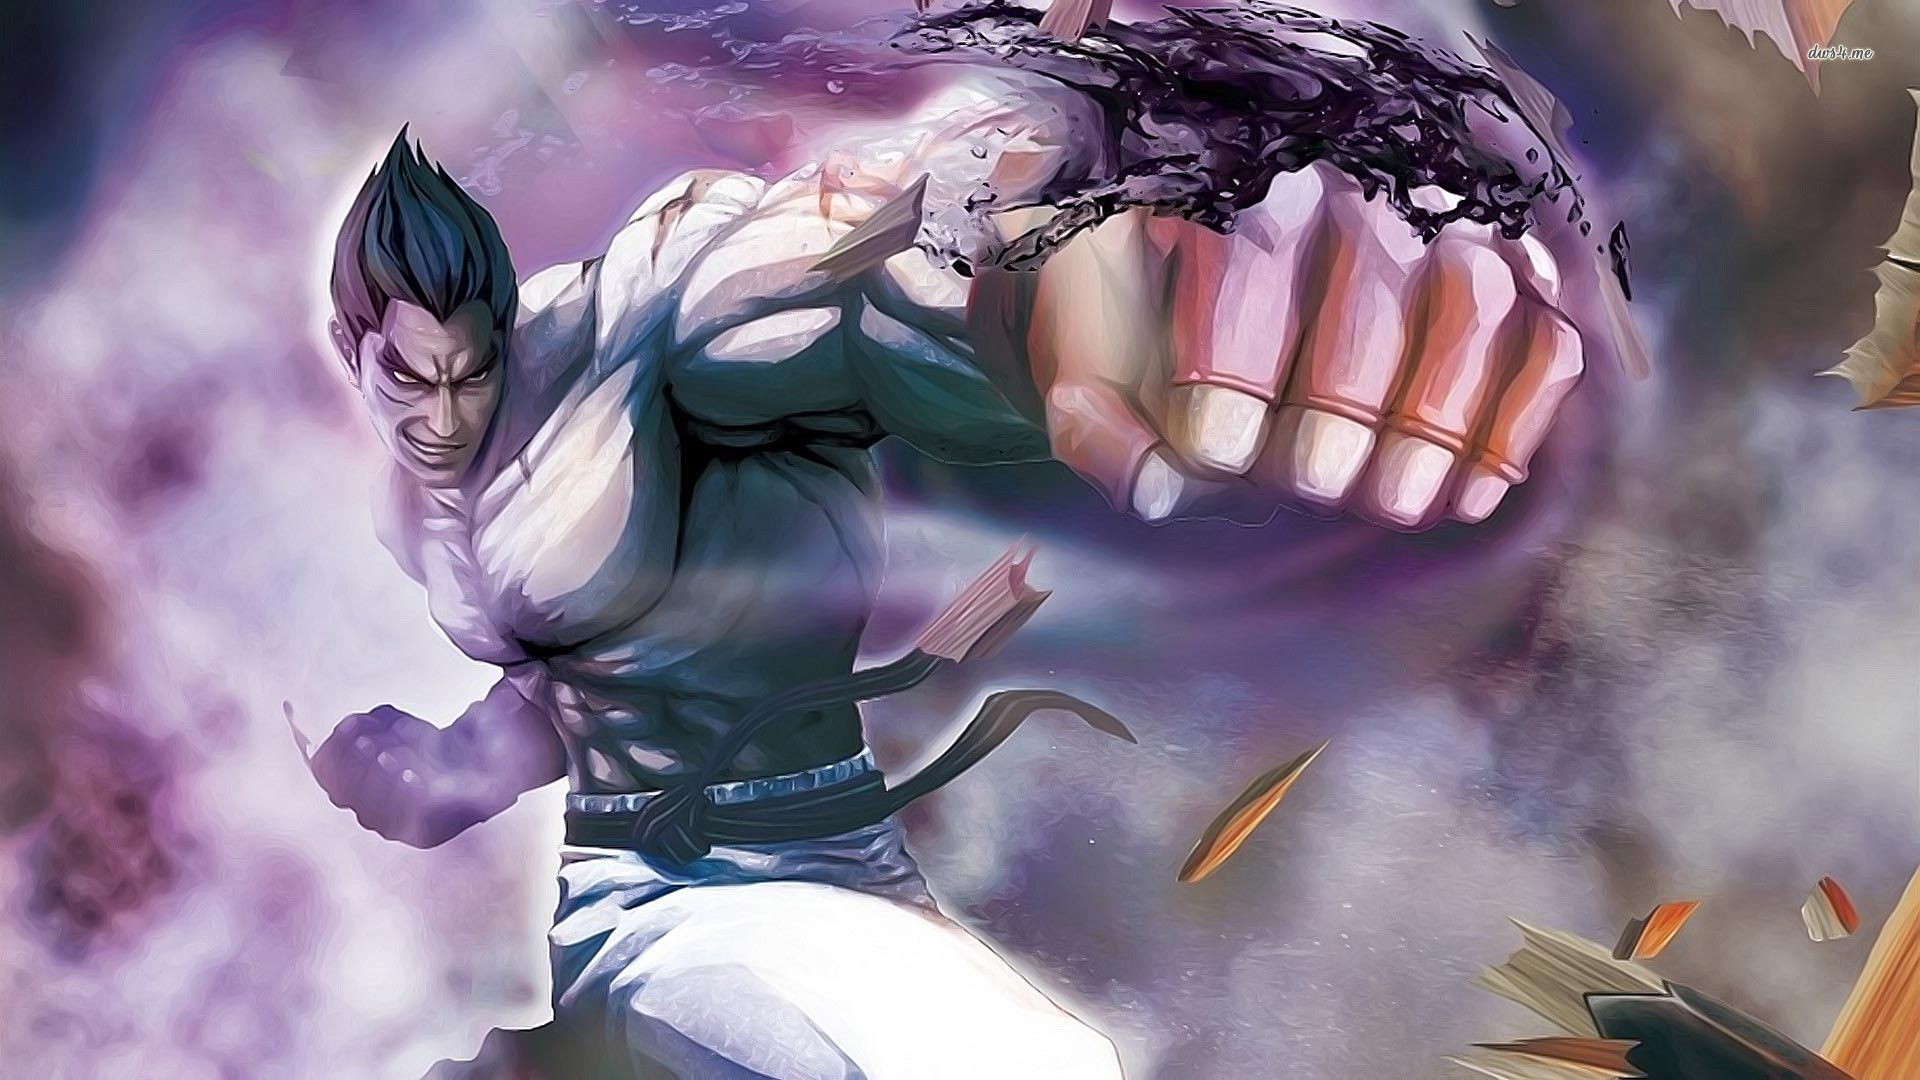 Street Fighter X Tekken Theme For Windows 10 8 7